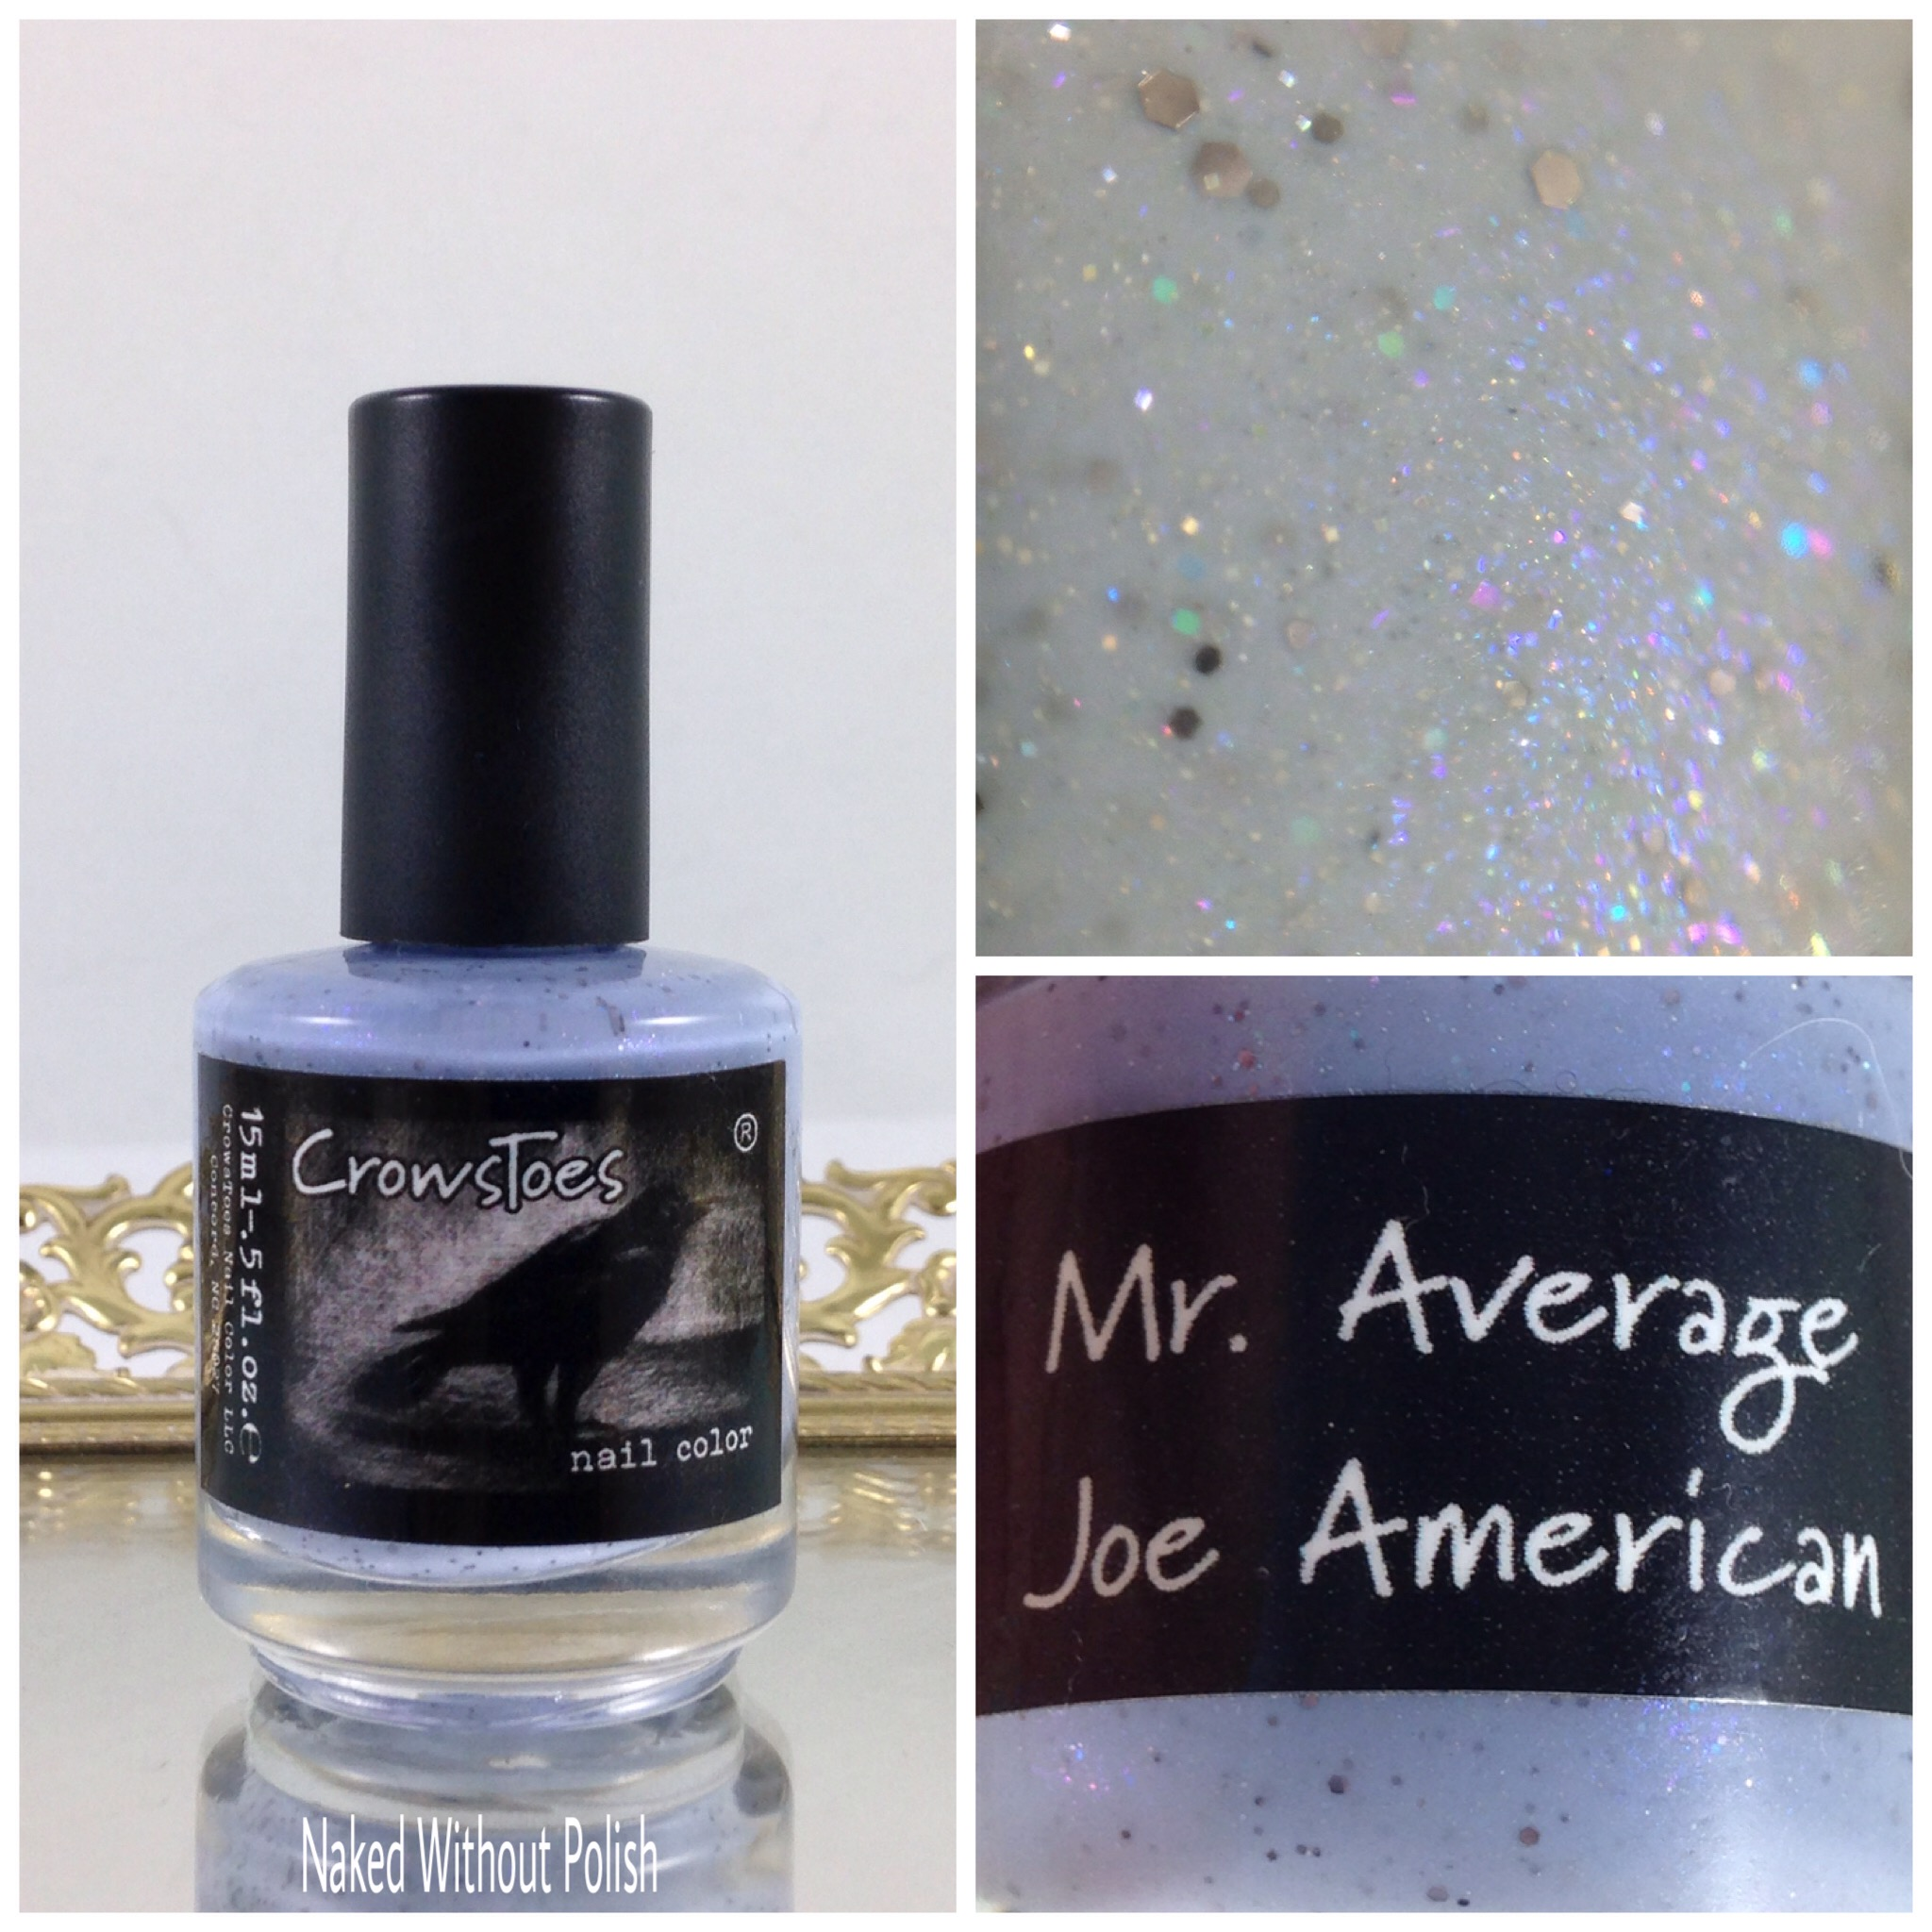 Polish-Pickup-Crows-Toes-Nail-Color-Mr-Average-Joe-American-1